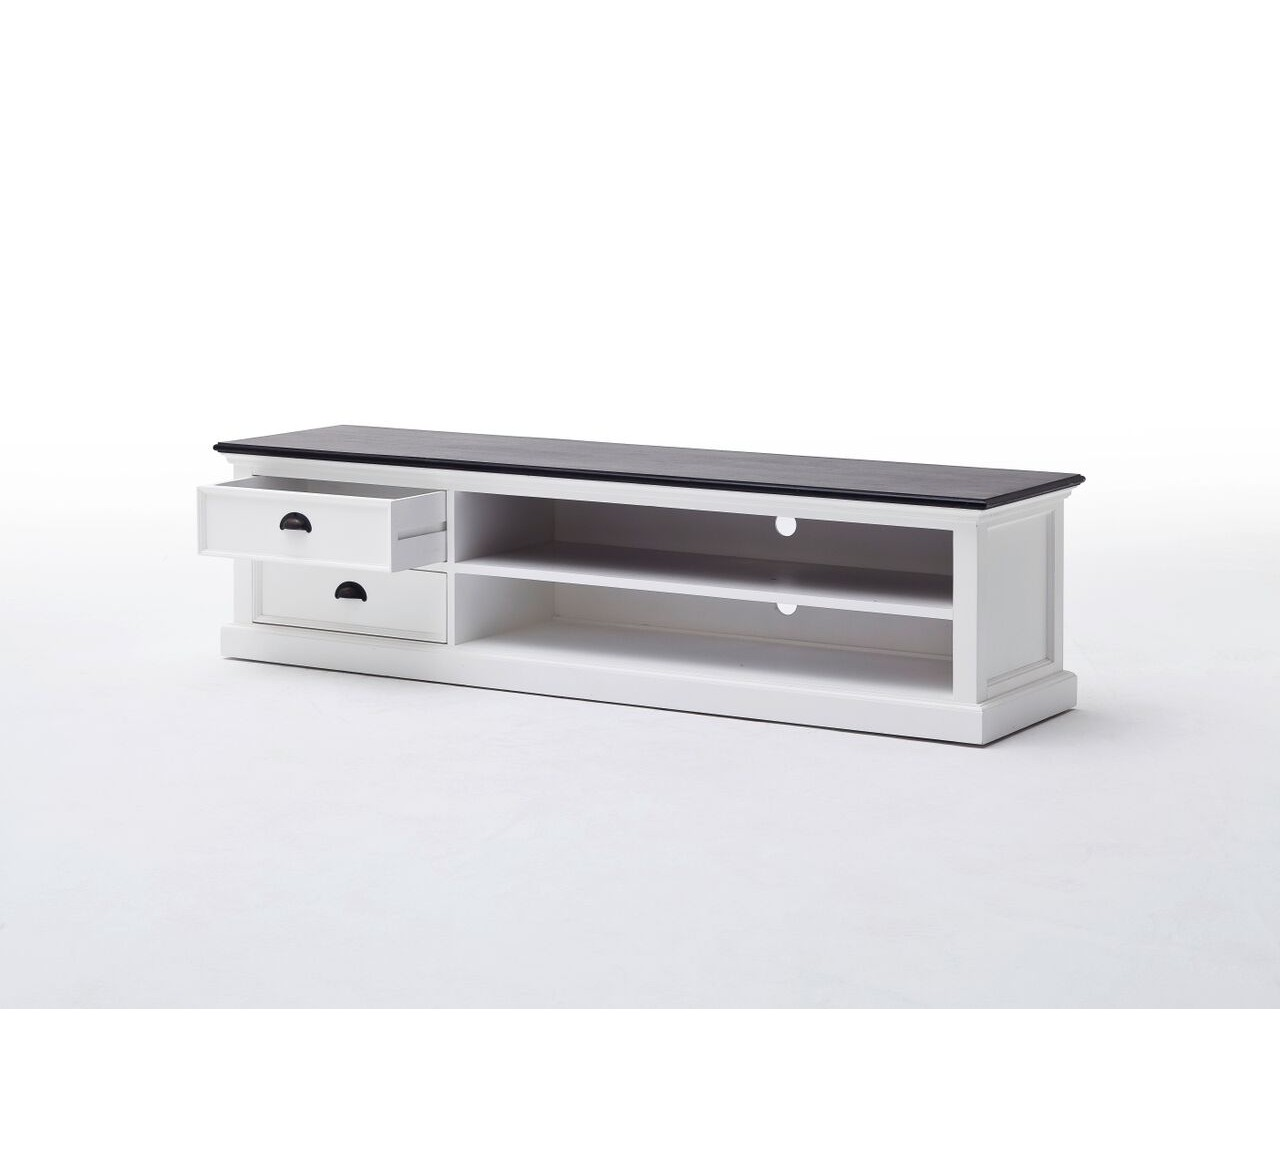 Grand Meuble Tv Blanc Grand Meuble Tv Blanc Maison Design Wiblia